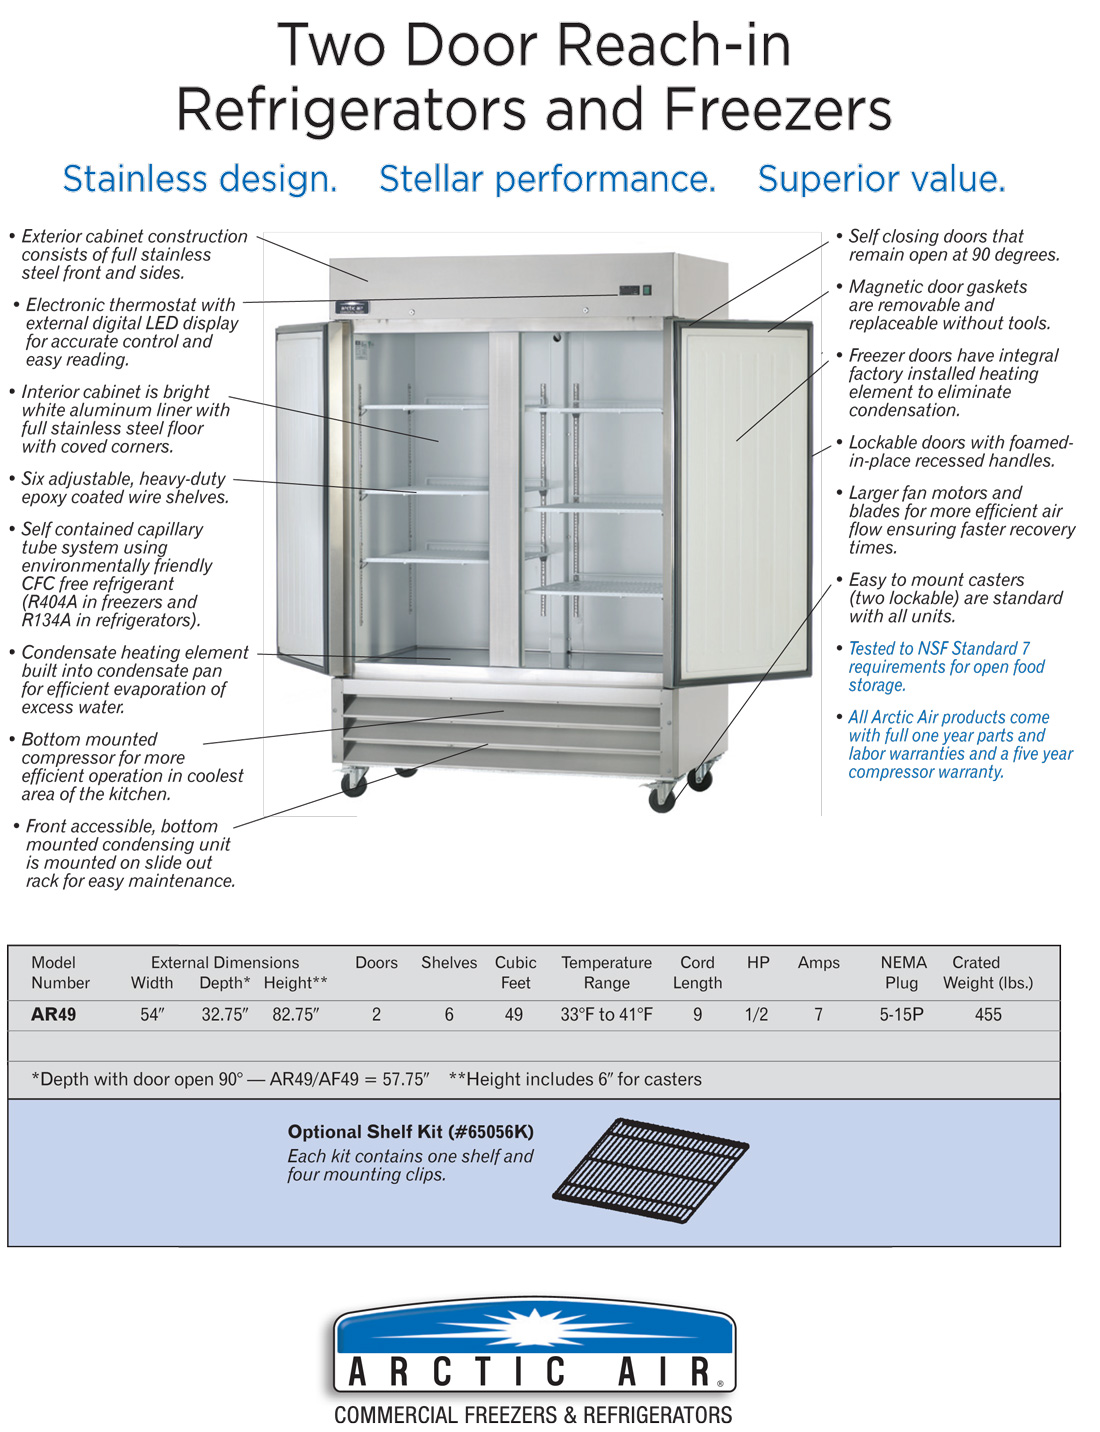 Arctic Air AR49 Commercial 2-Door Refrigerator Specifications Diagram